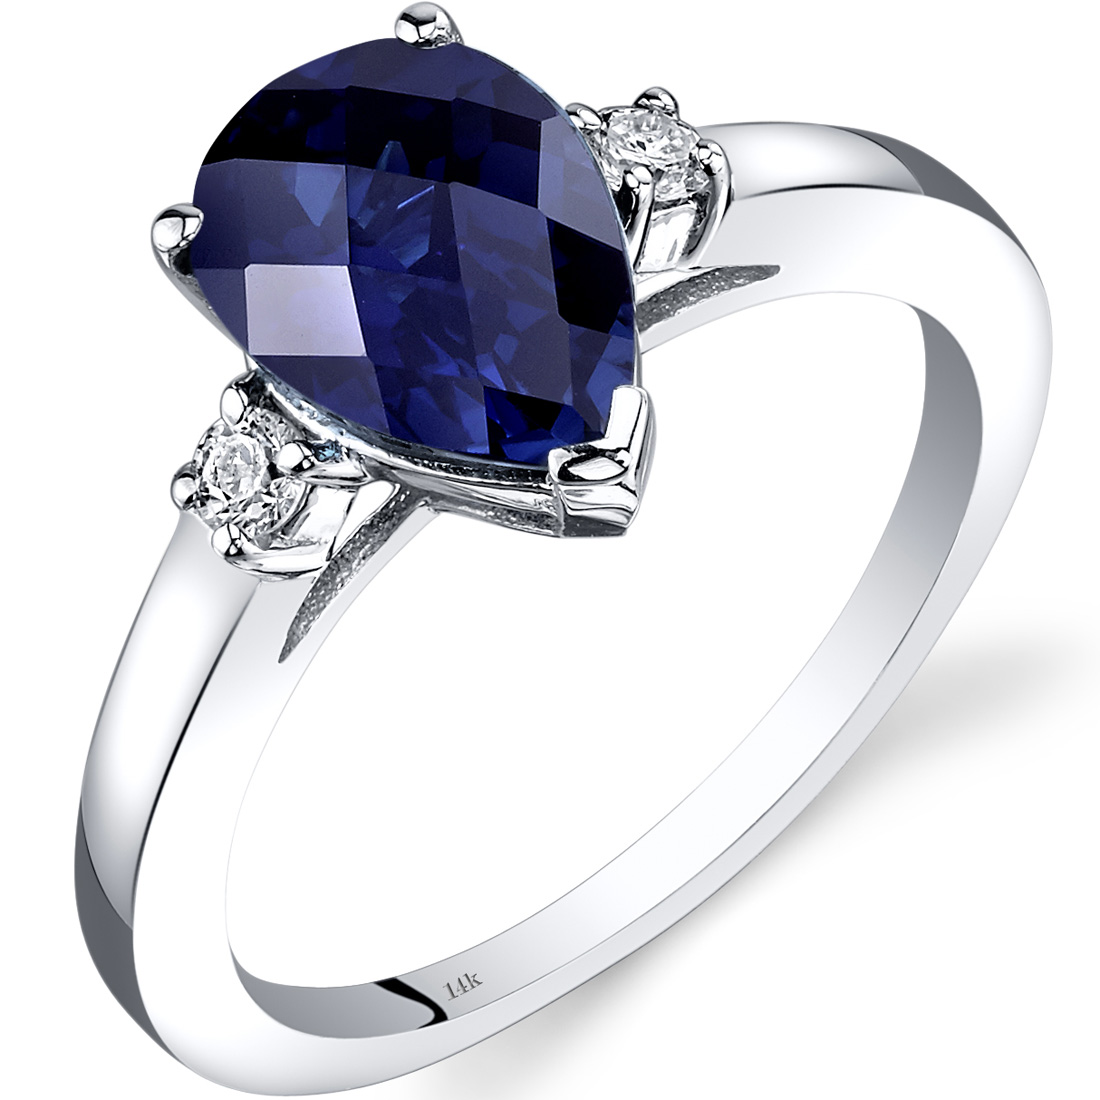 Peora 2.5 Carat T.G.W. Pear-Cut Created Blue Sapphire and Diamond Accent 14kt White Gold Ring Size 7